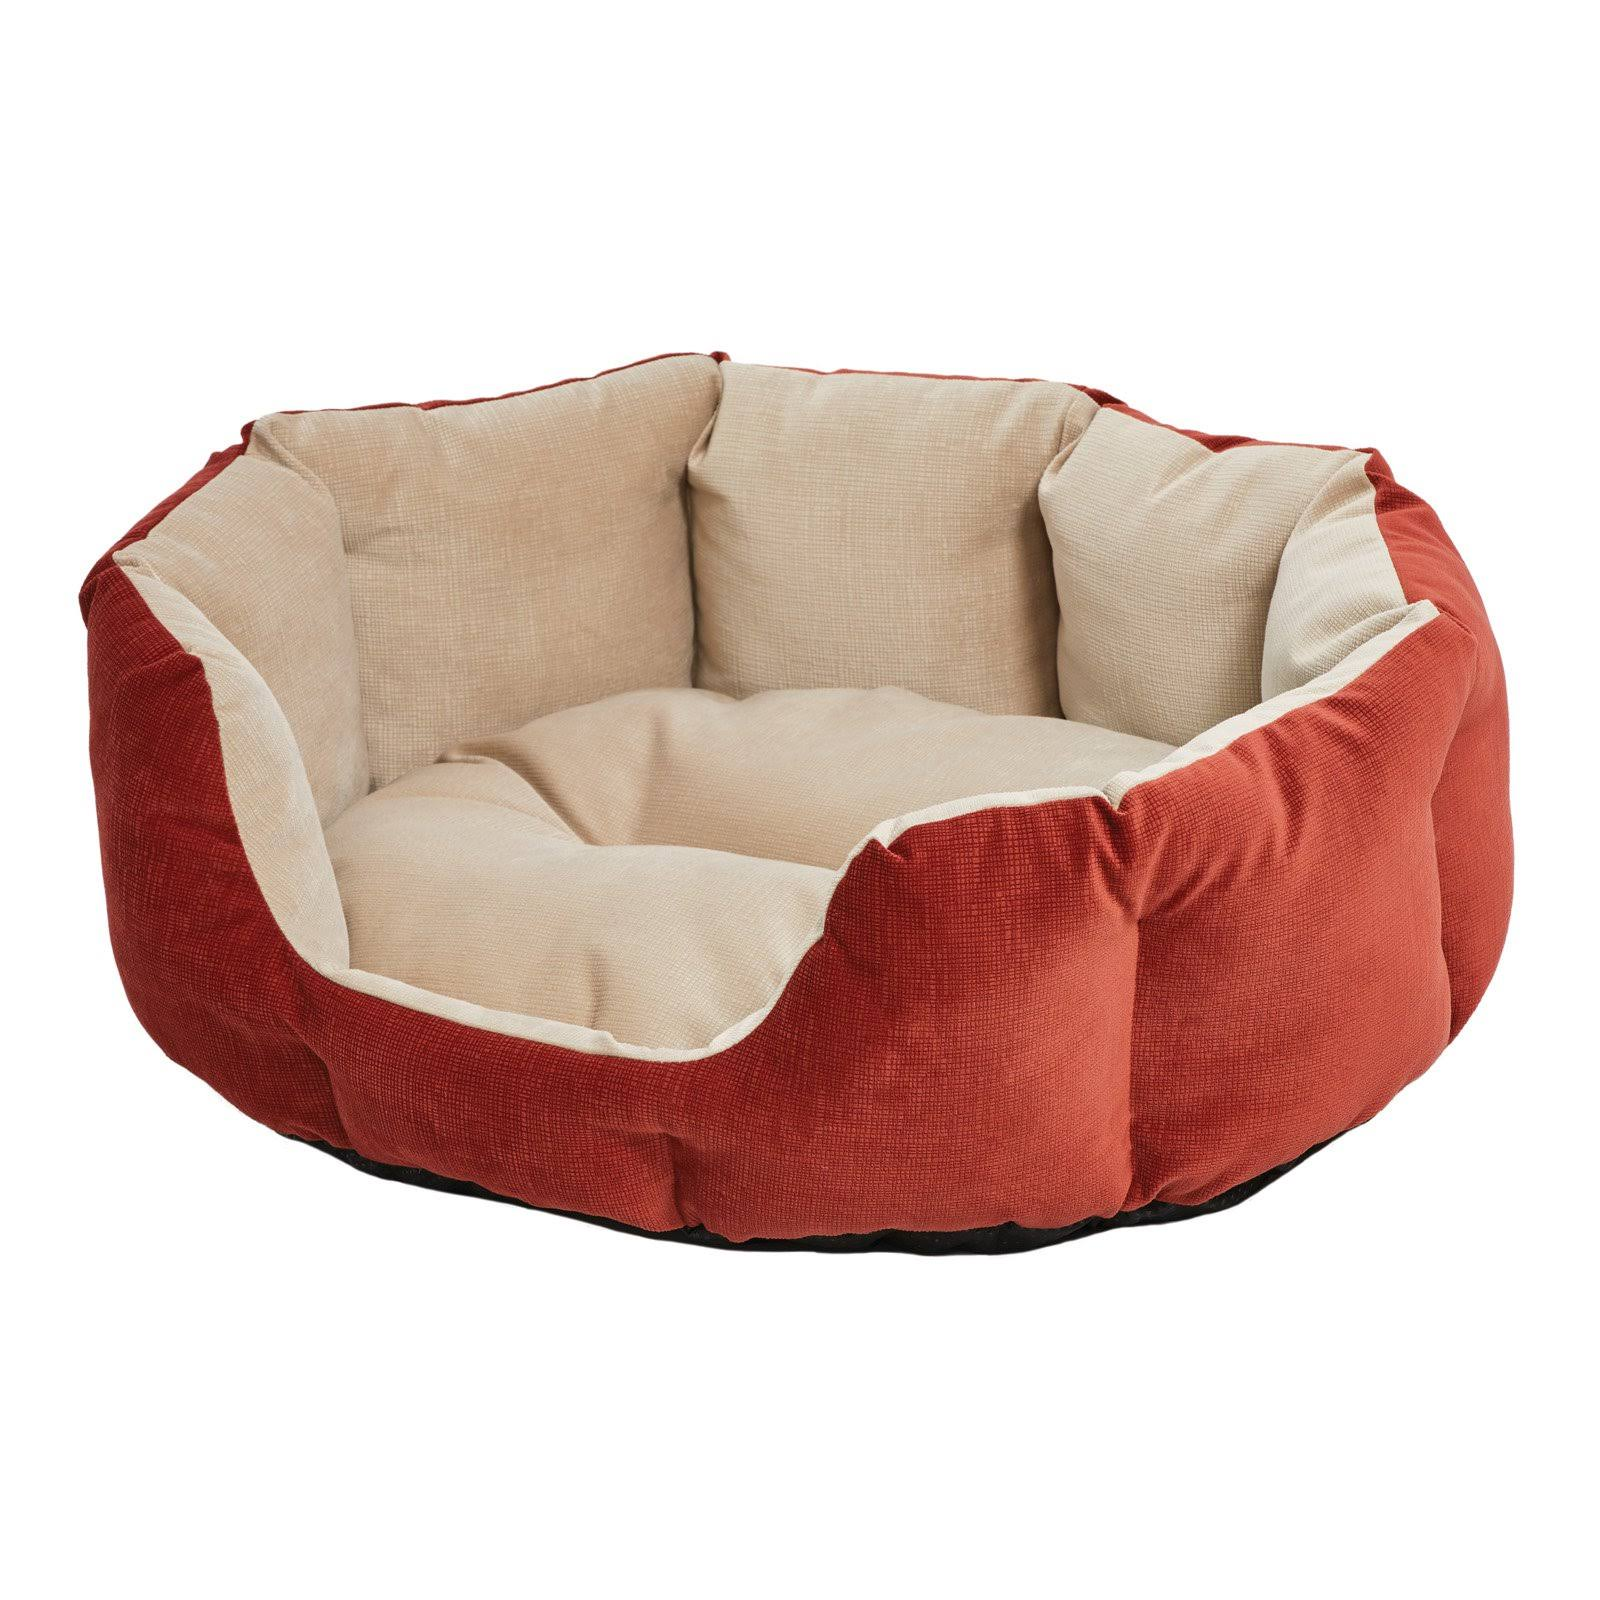 "Midwest Homes for Pets 36"" Russet Tulip Bed"